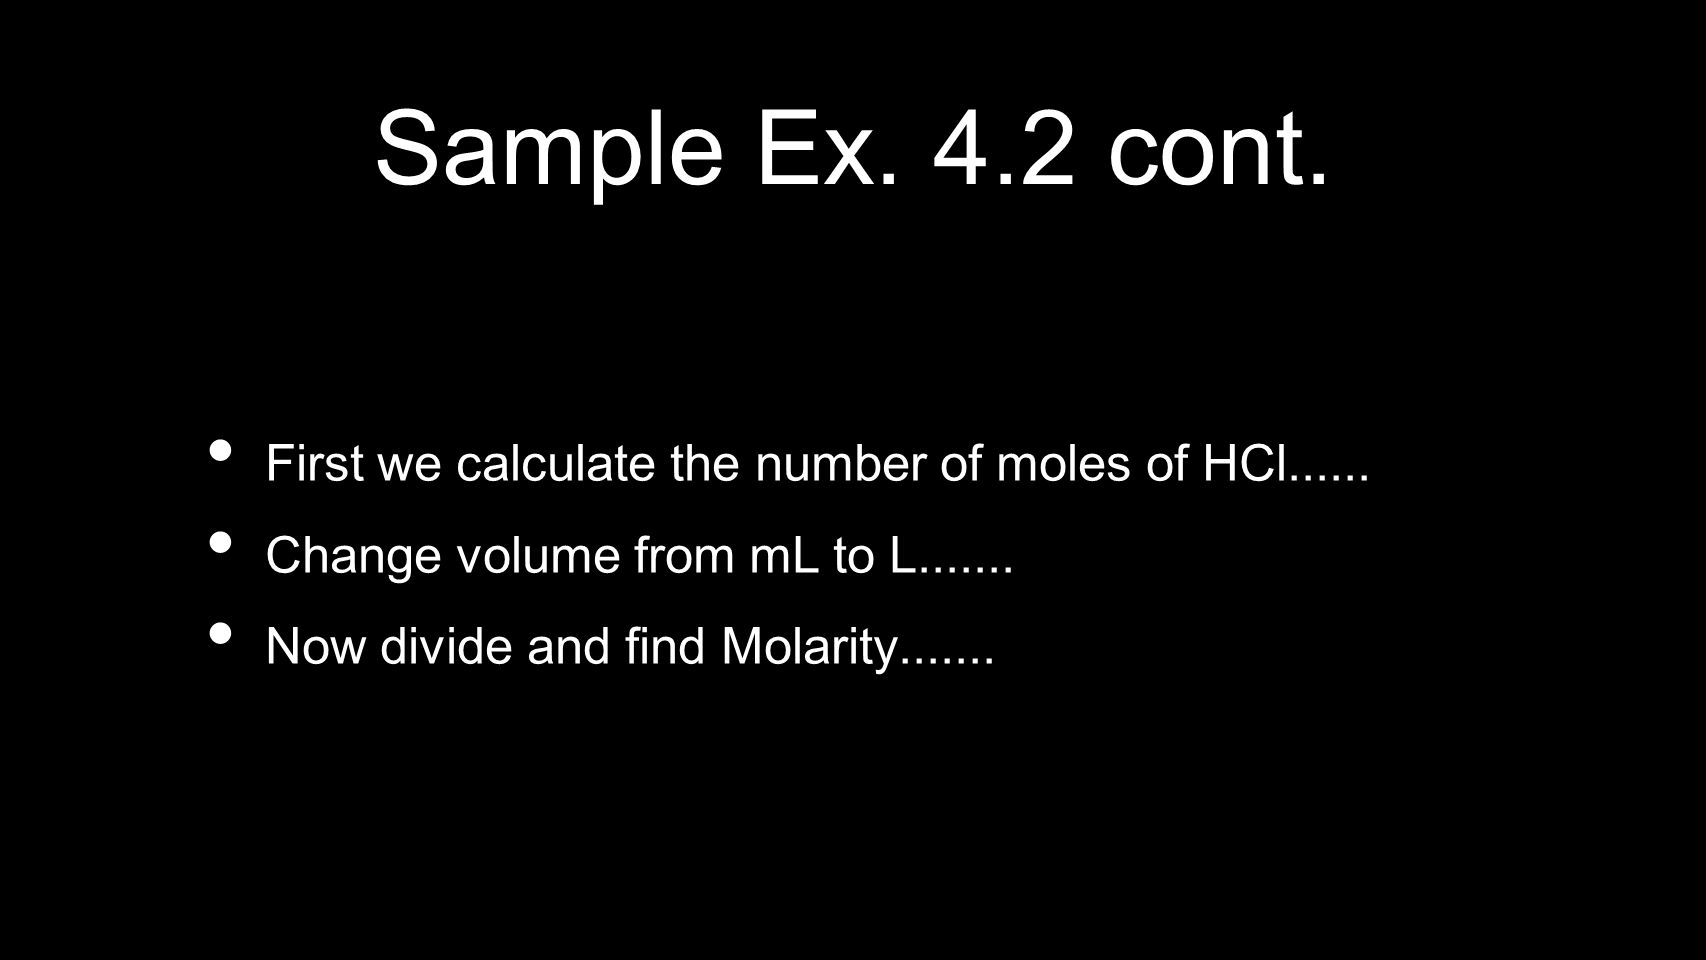 Sample Ex. 4.2 cont. First we calculate the number of moles of HCl...... Change volume from mL to L....... Now divide and find Molarity.......